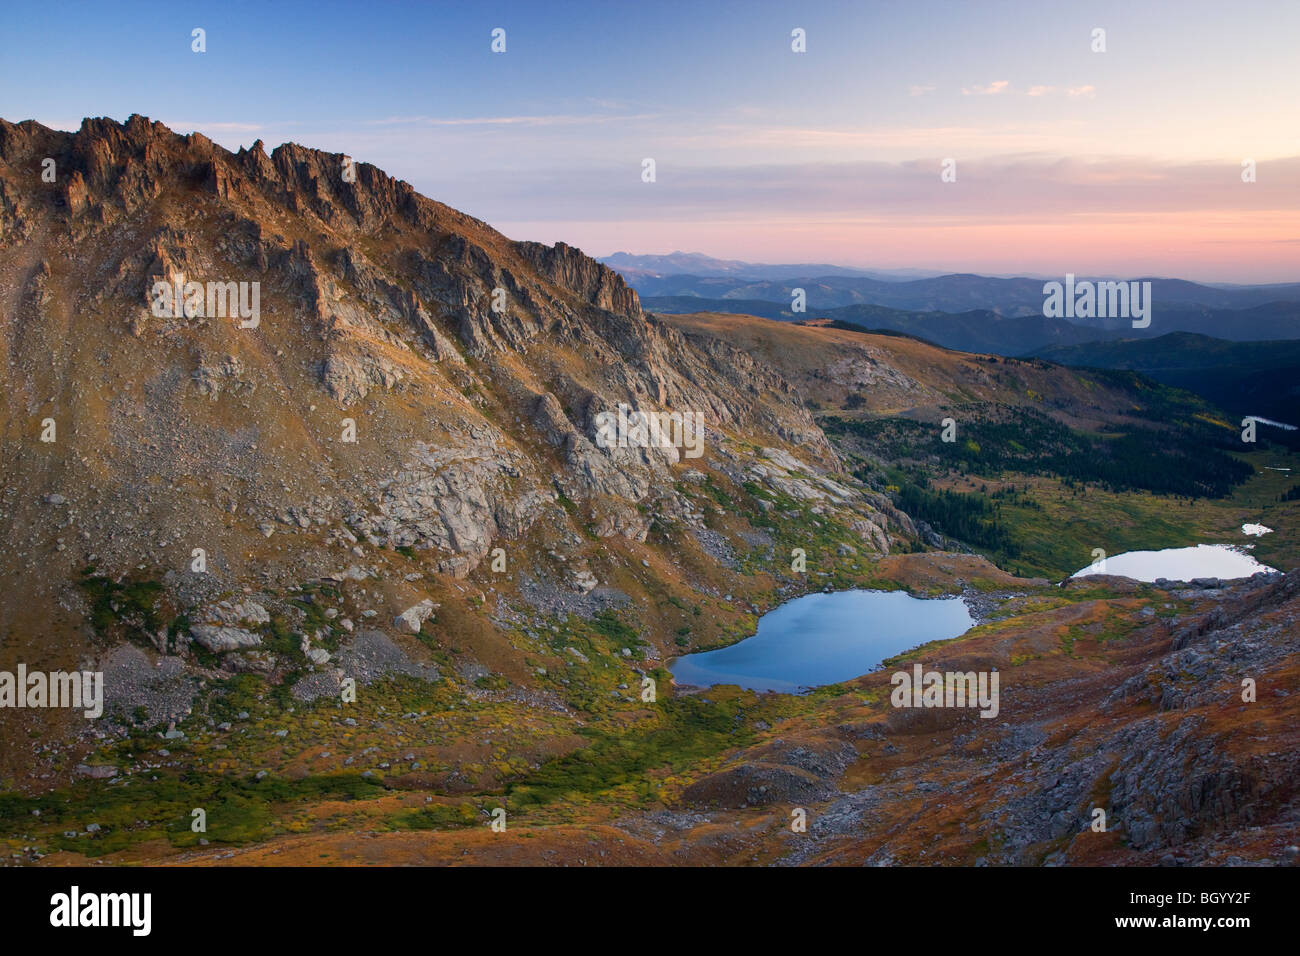 Mount Evans Recreation Area, Arapaho National Forest, Colorado. - Stock Image